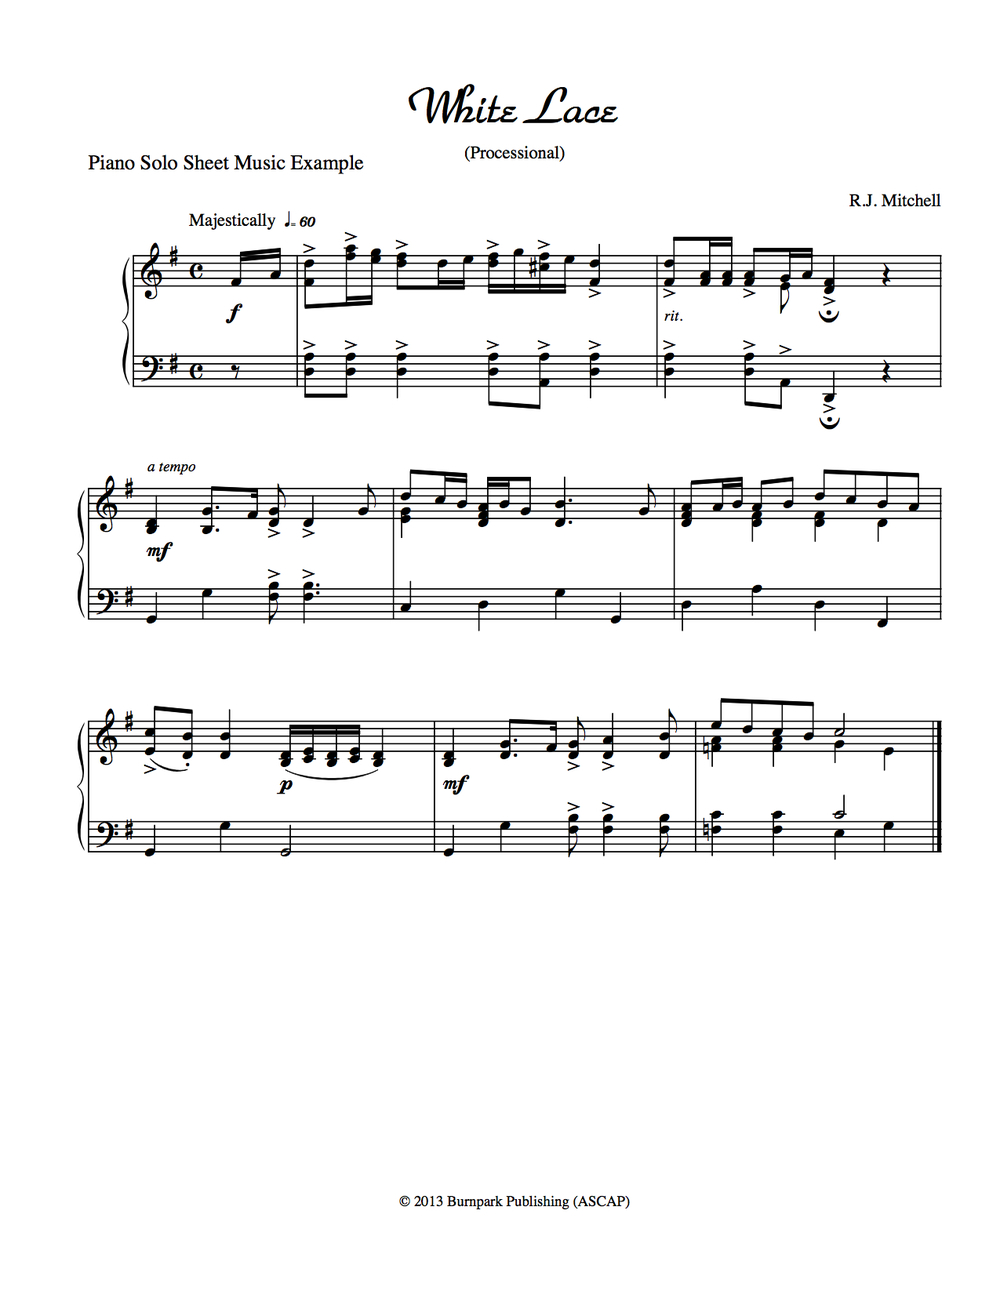 Piano Sheet Music Example